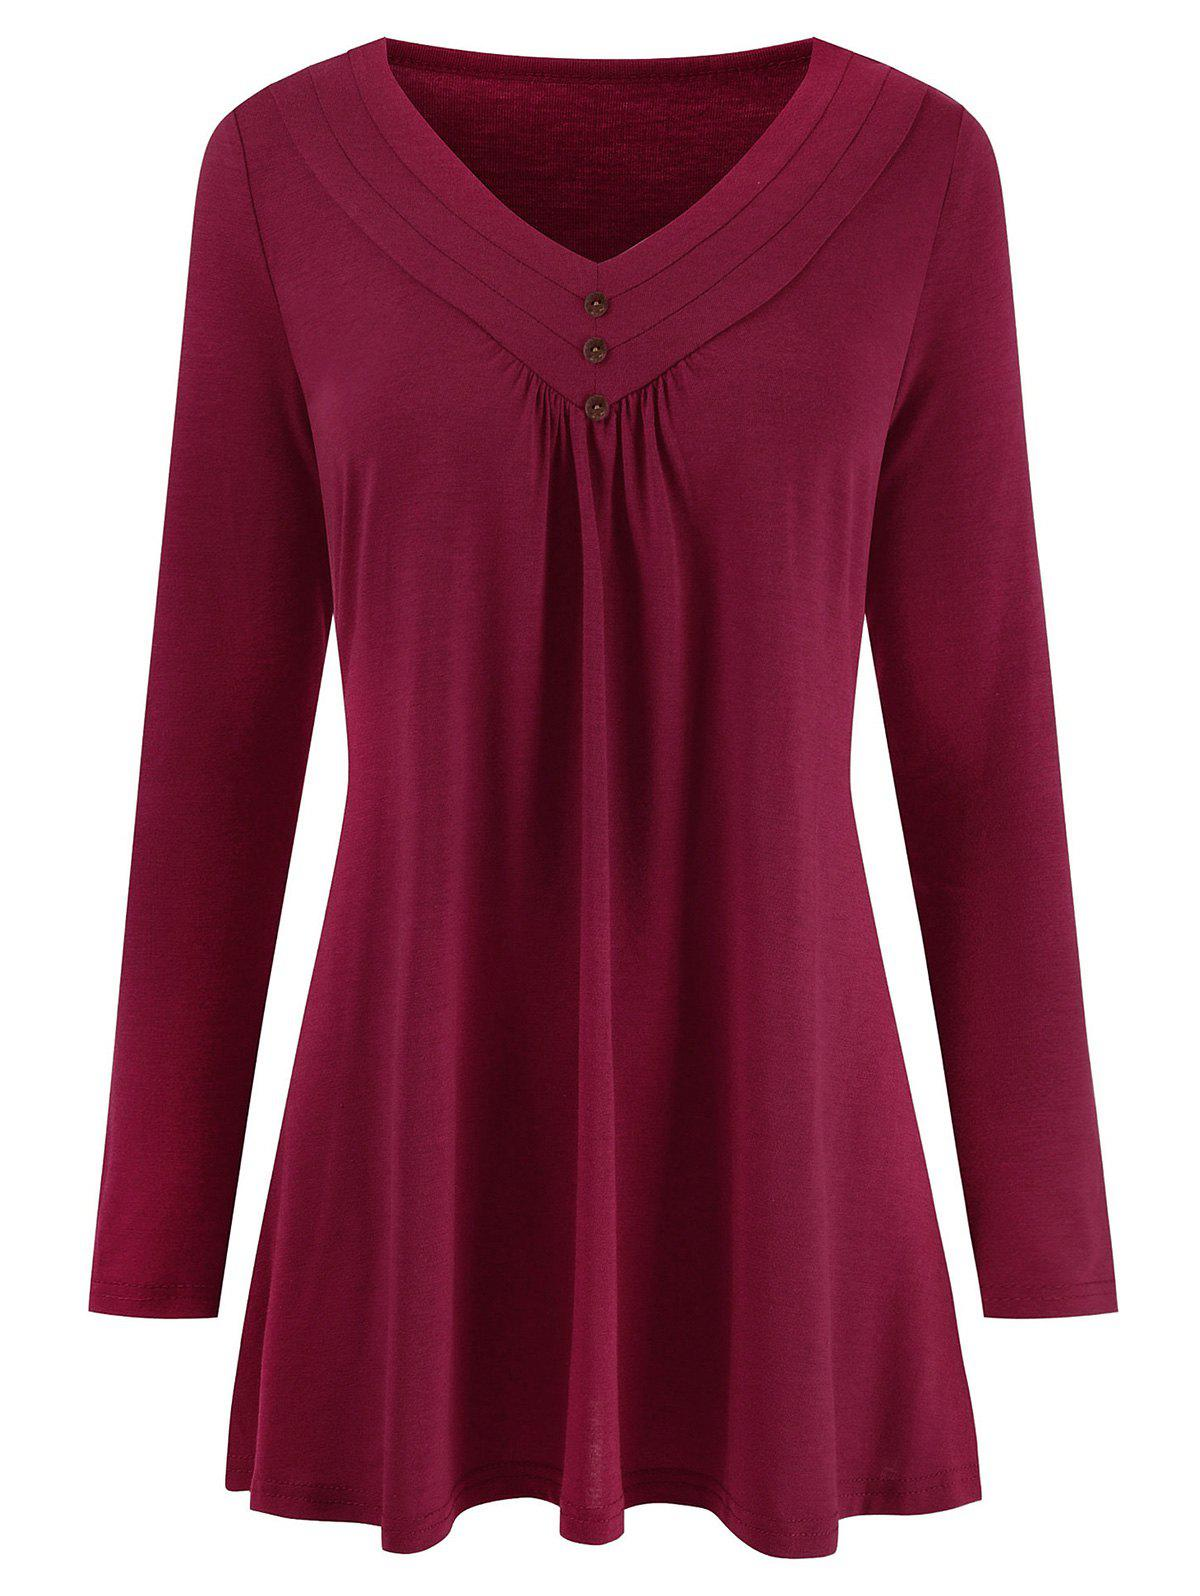 Mock Buttons V Neck Solid Tee - RED WINE 3XL